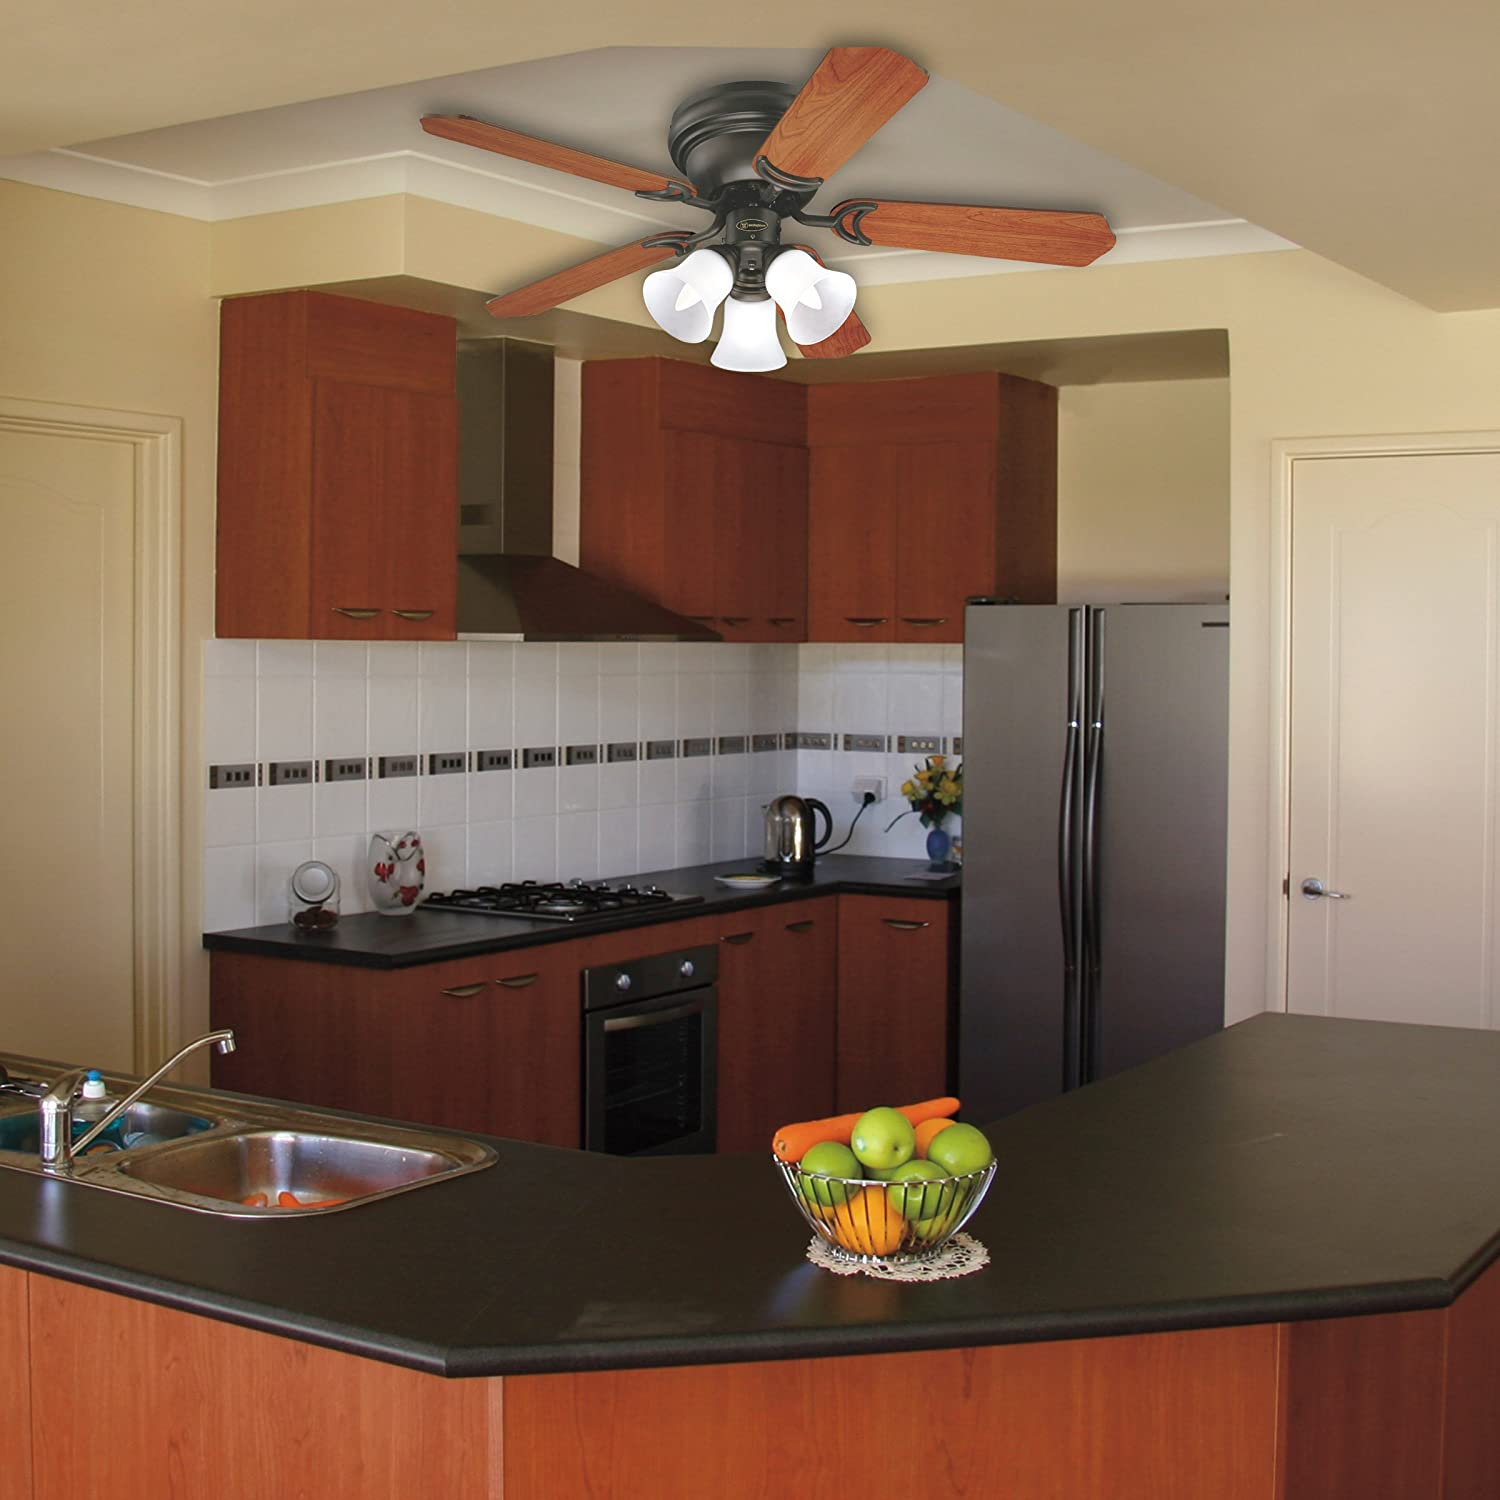 Westinghouse Contempra Trio Three Light 42 Westinghouse Contempra Trio  Three Light 42 From Small Kitchen Ceiling Fans, ...